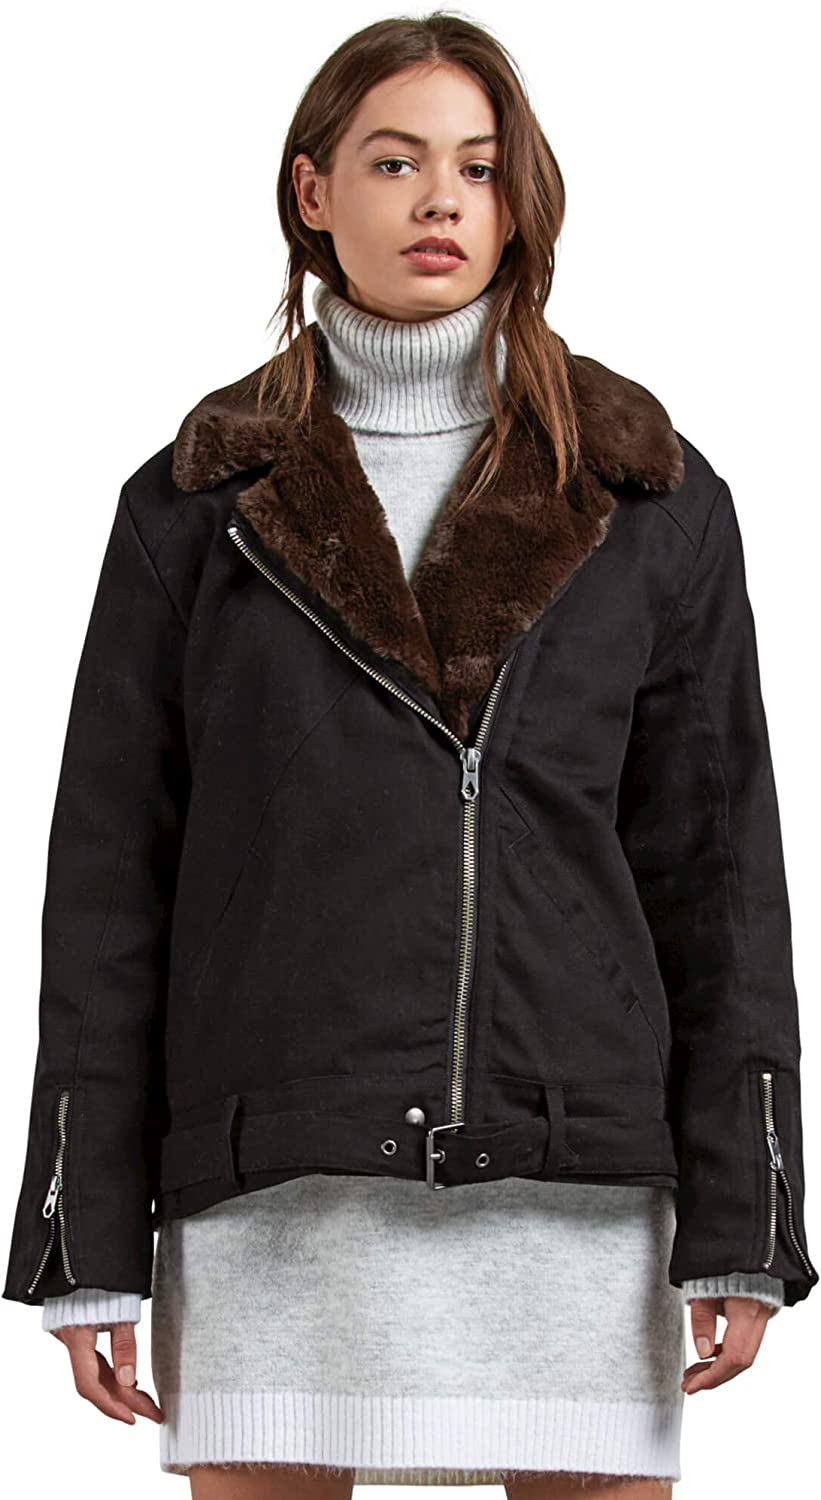 Volcom Women's Perfect Stone Jacket Front Max 74% OFF Factory outlet Open